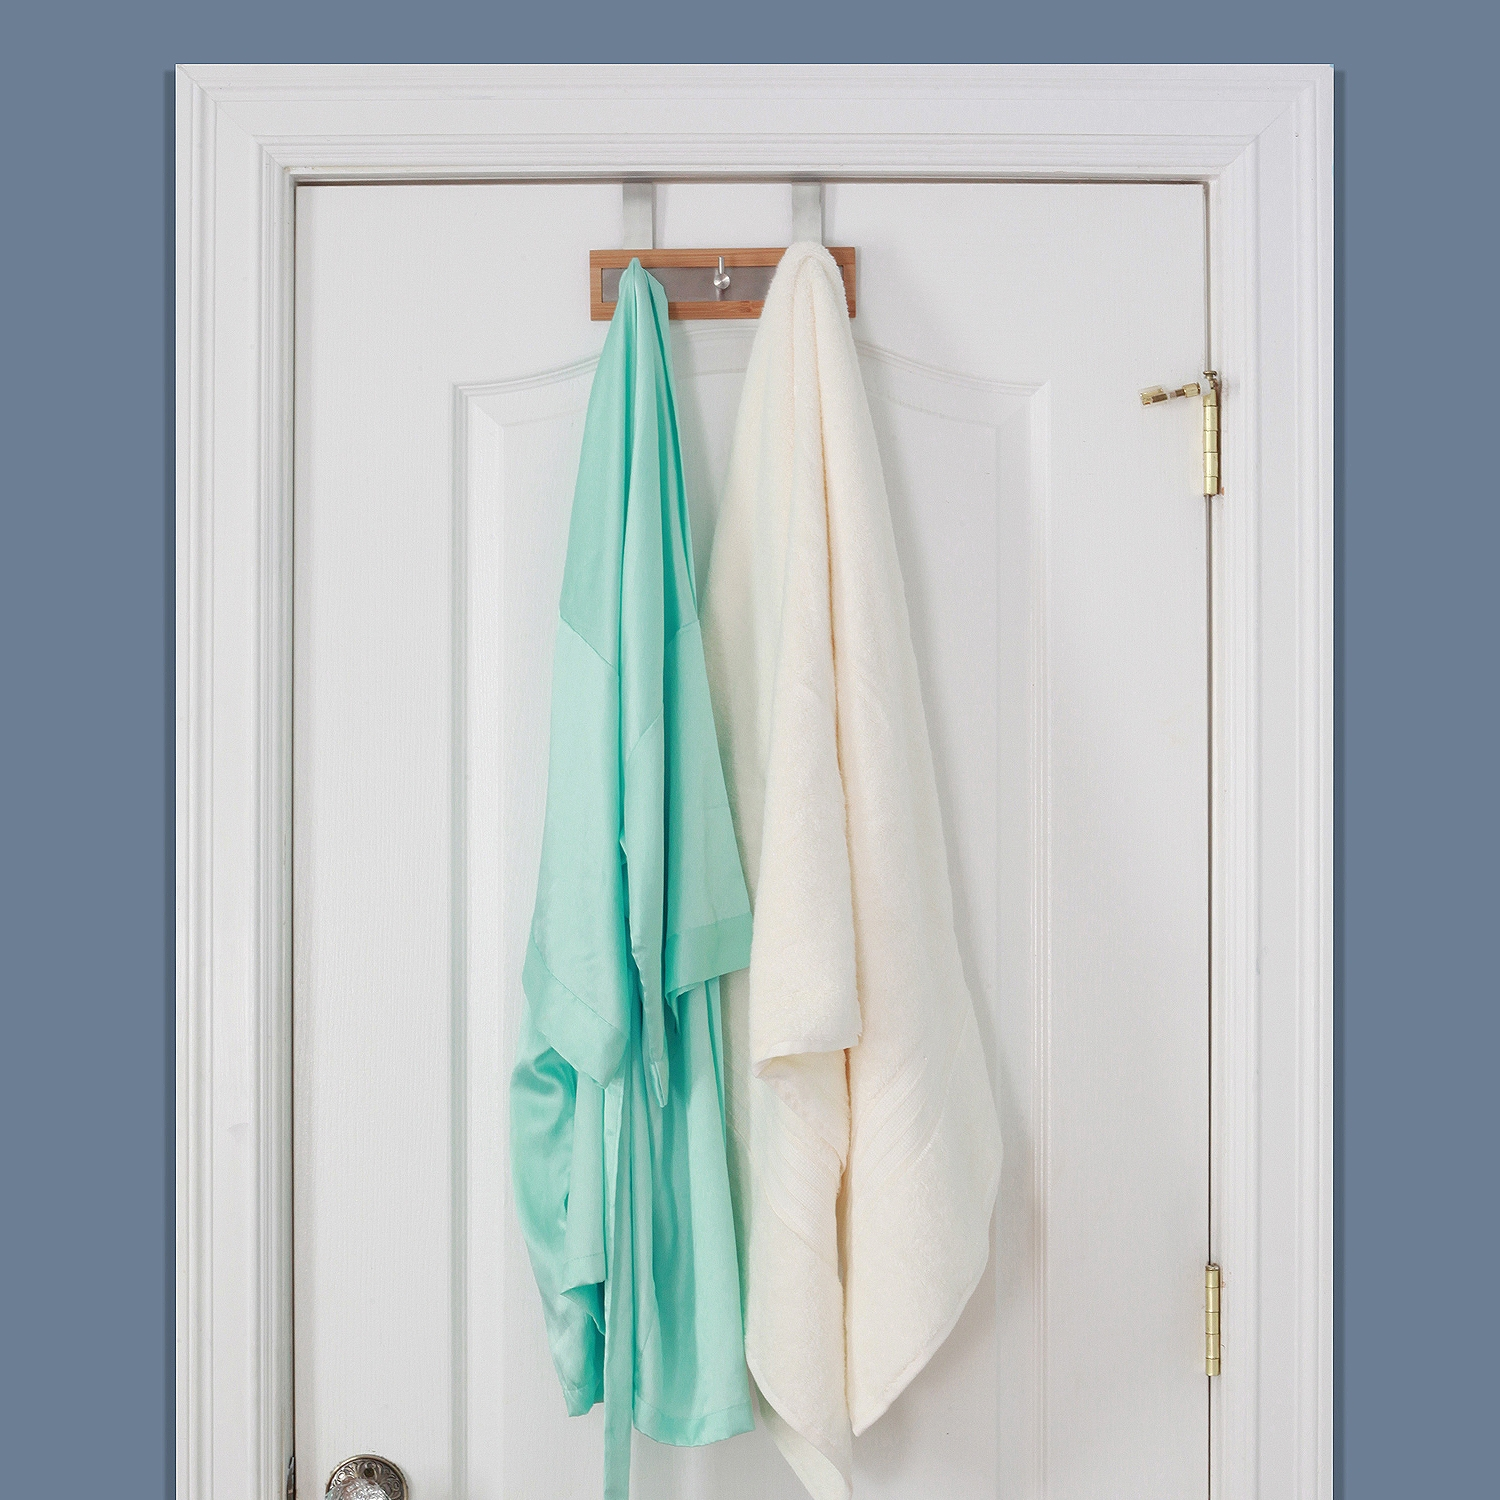 Towel Holder For Bathroom Door